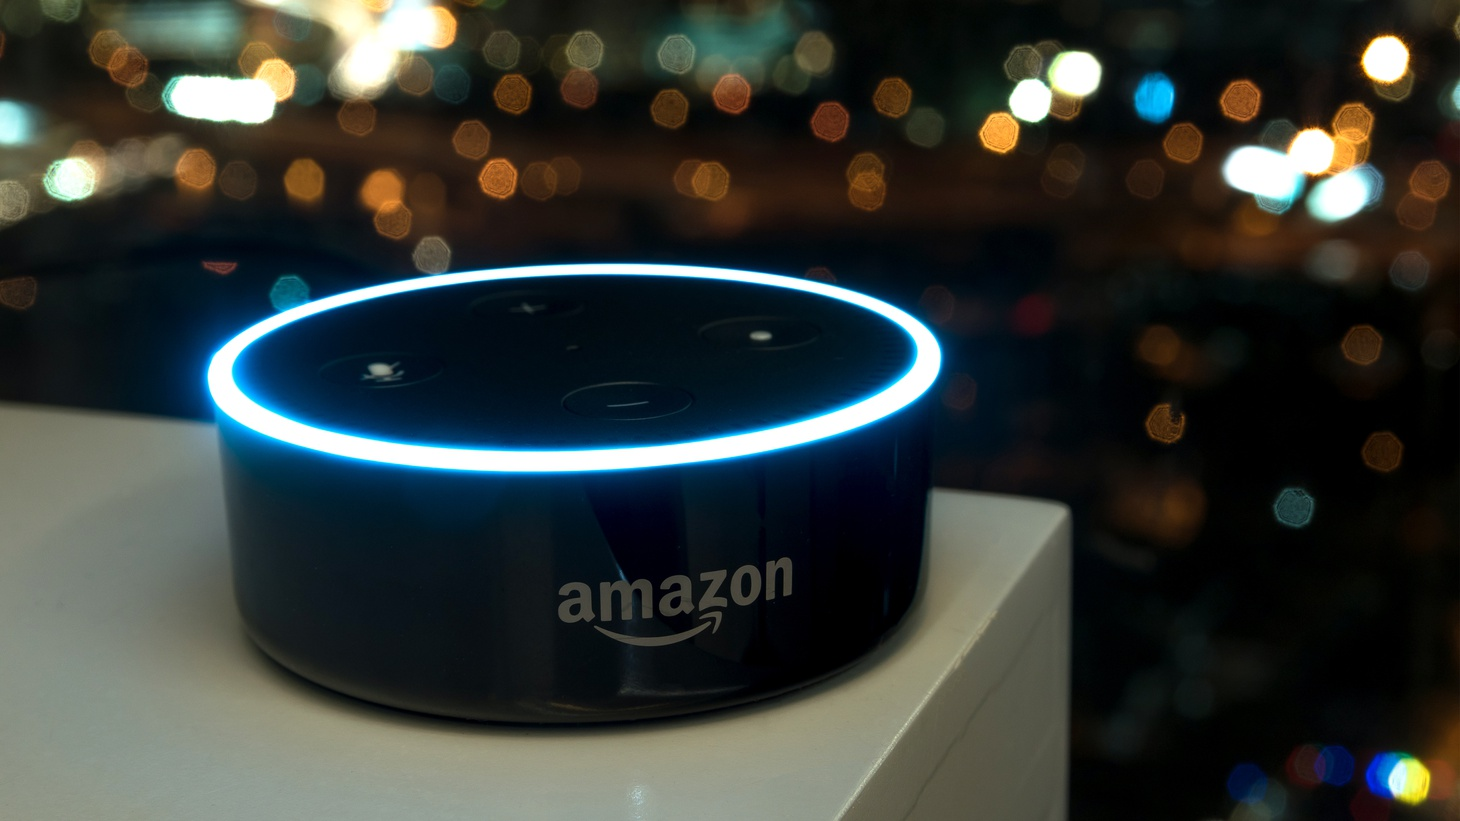 Amazon's devices belonging to you and your neighbors will be able to connect with each other starting Tuesday.